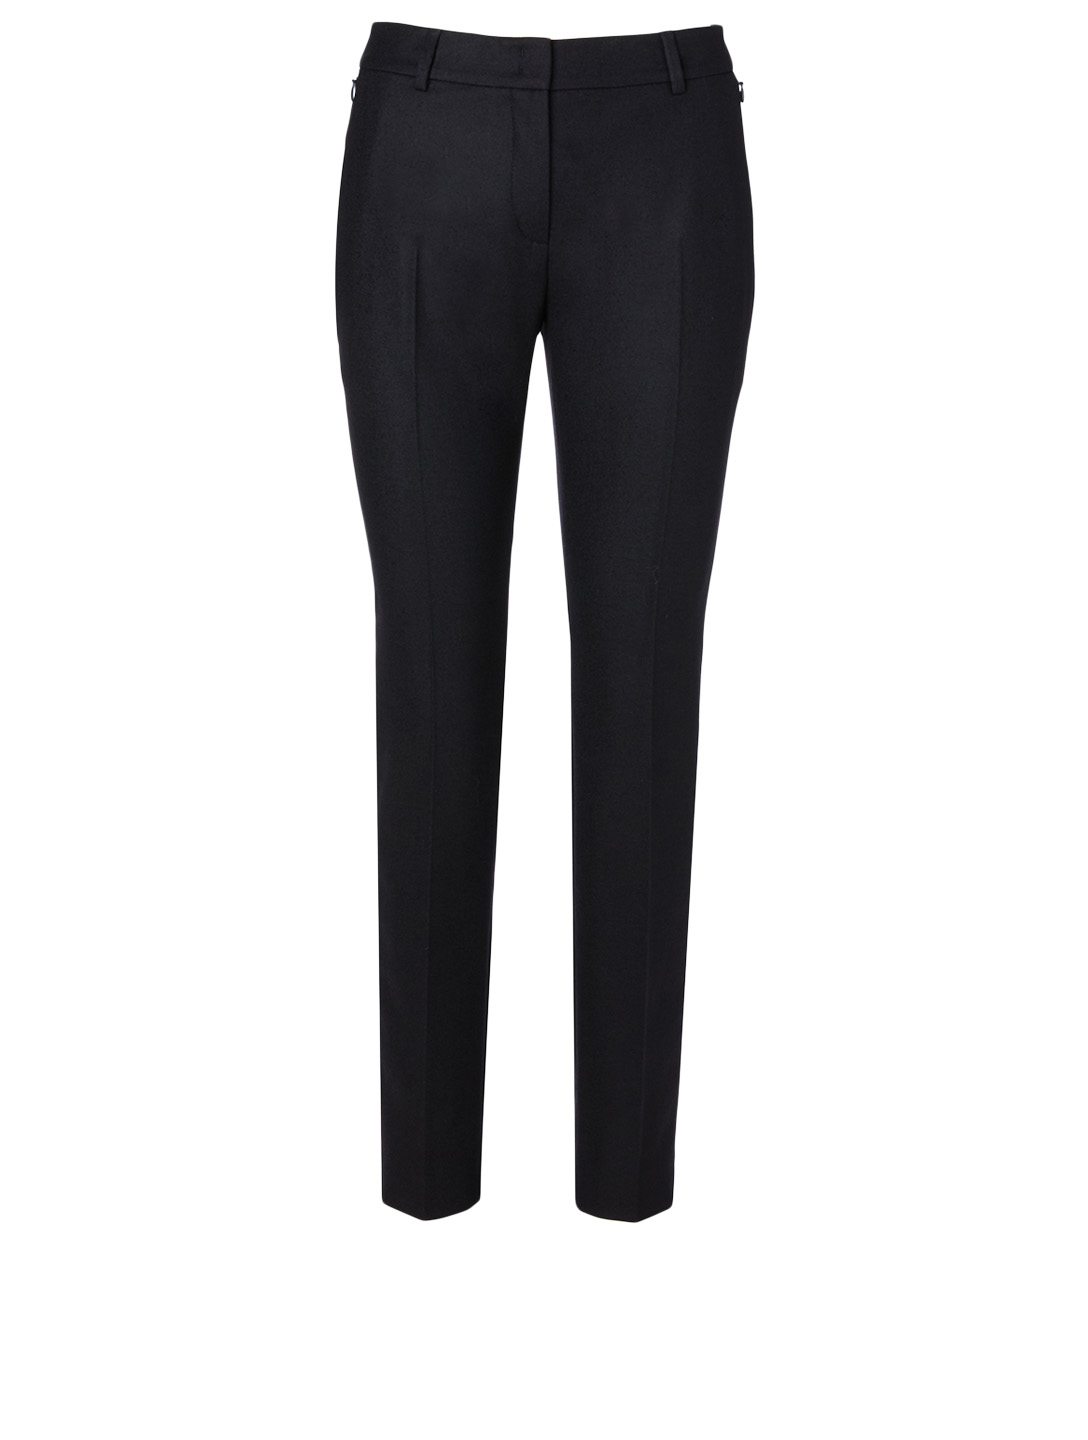 AKRIS Wool Stretch Pants Women's Blue